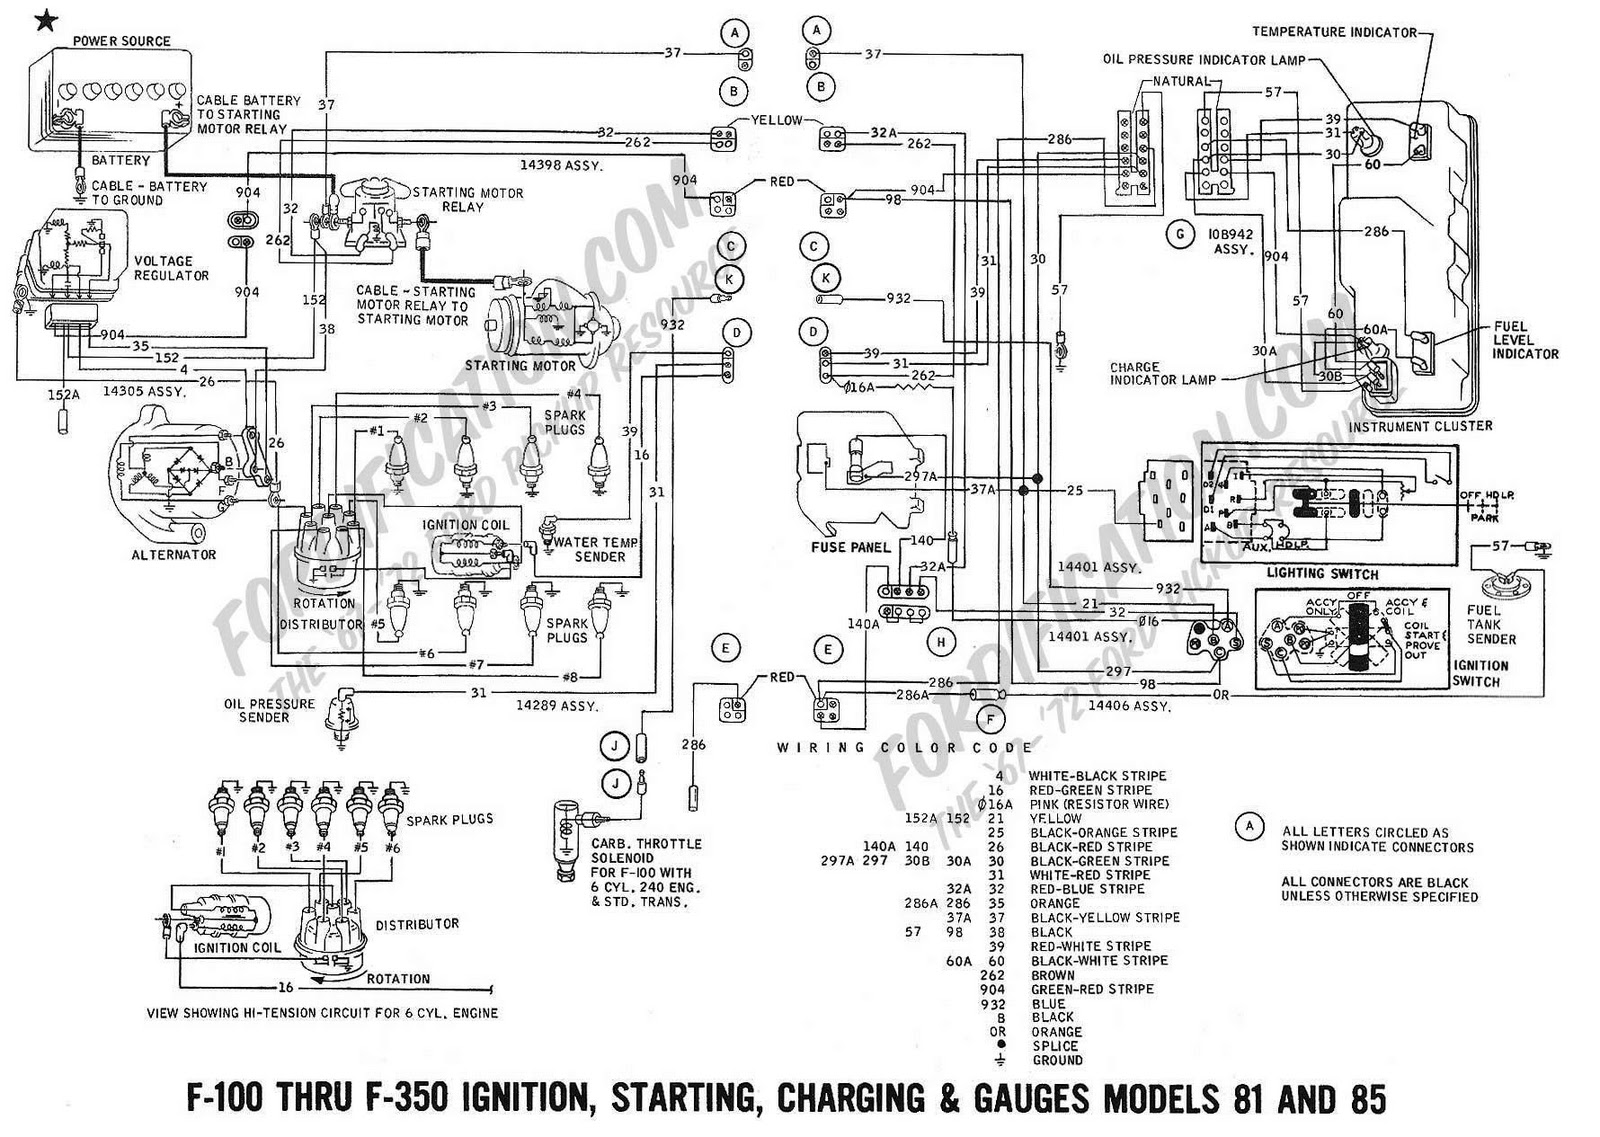 1969 Ford F100 F350 Ignition%2C Starting%2C Charging%2C And Gauges Wiring Diagram 1993 ford f250 wiring diagram 1993 ford f 250 engine \u2022 free wiring 1977 ford f100 wiring diagram at n-0.co